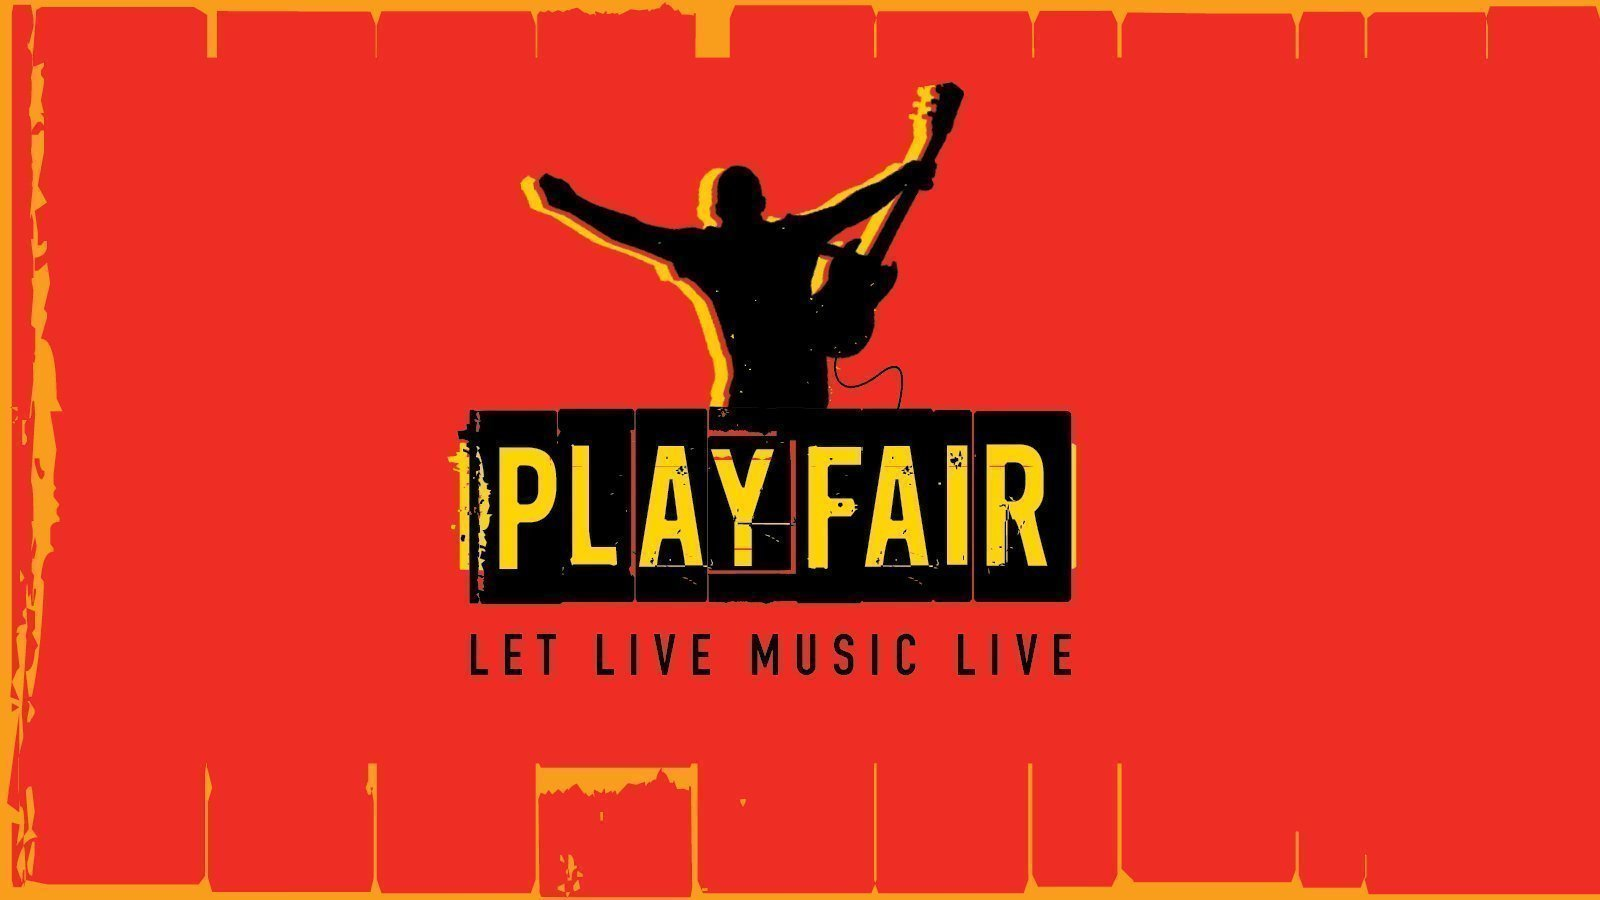 Share petition · The Queensland Premier - : Play Fair - Let Live Music Live · Change.org